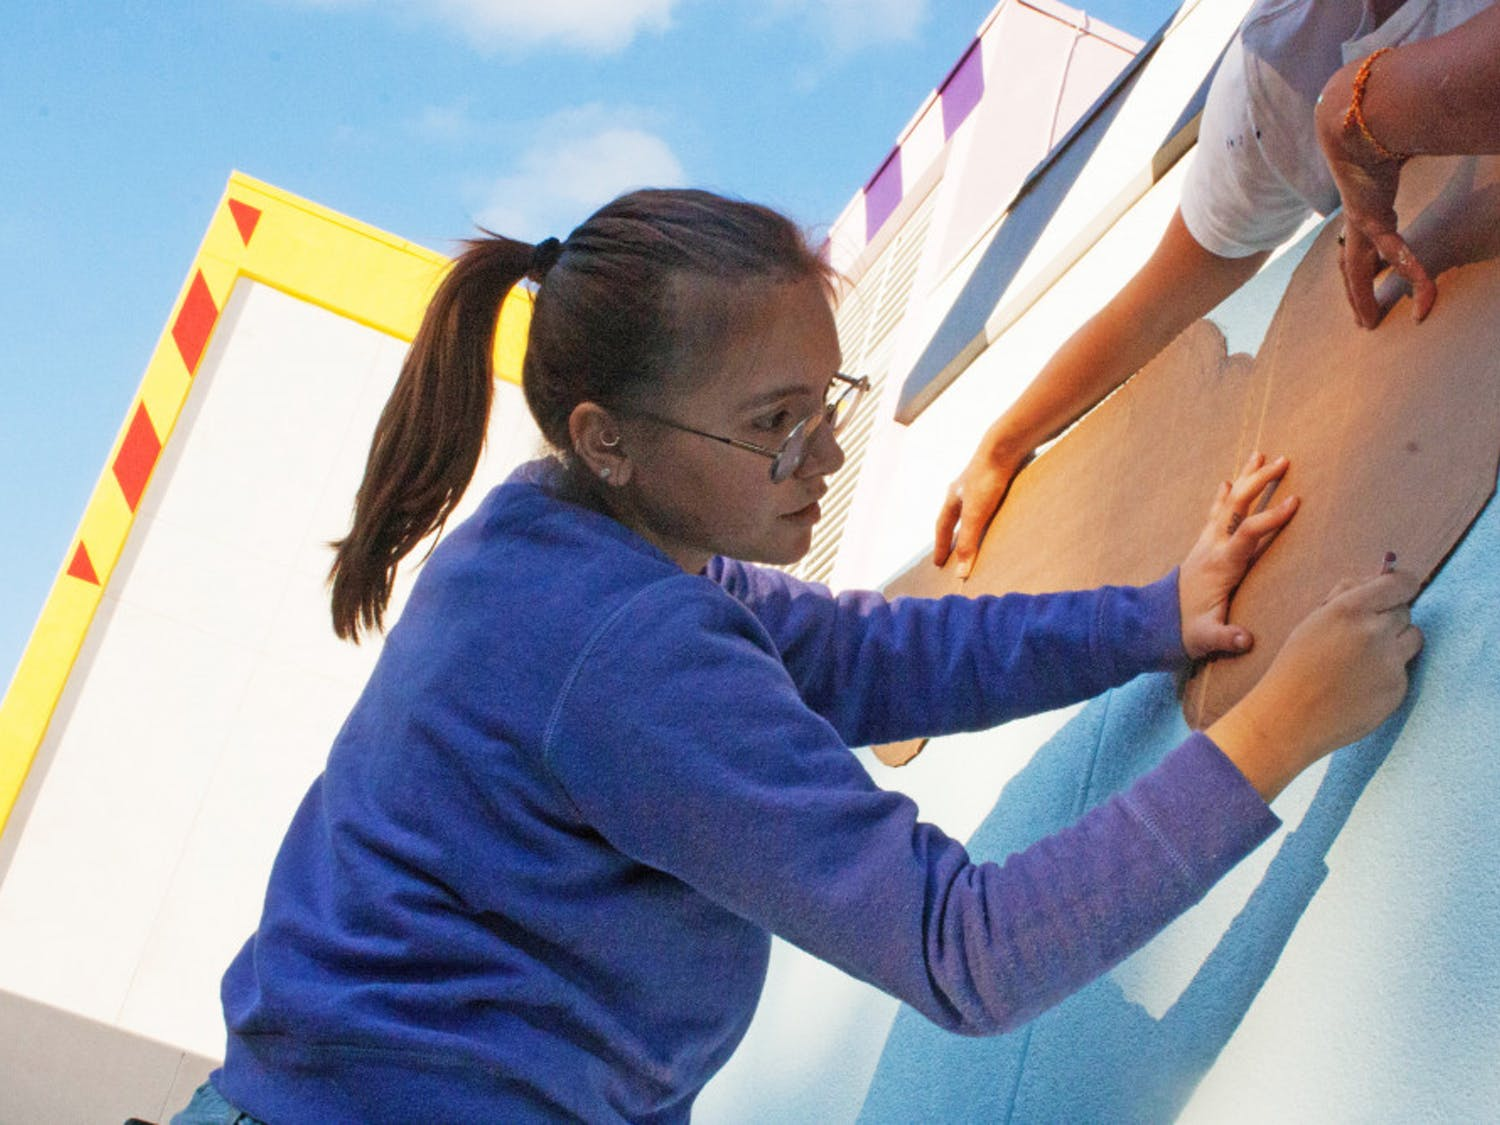 Jovana Christiani, a 19-year-old Santa Fe College illustration sophomore, outlines the new mural on Santa Fe's walls Tuesday. The mural is set to be finished Saturday.